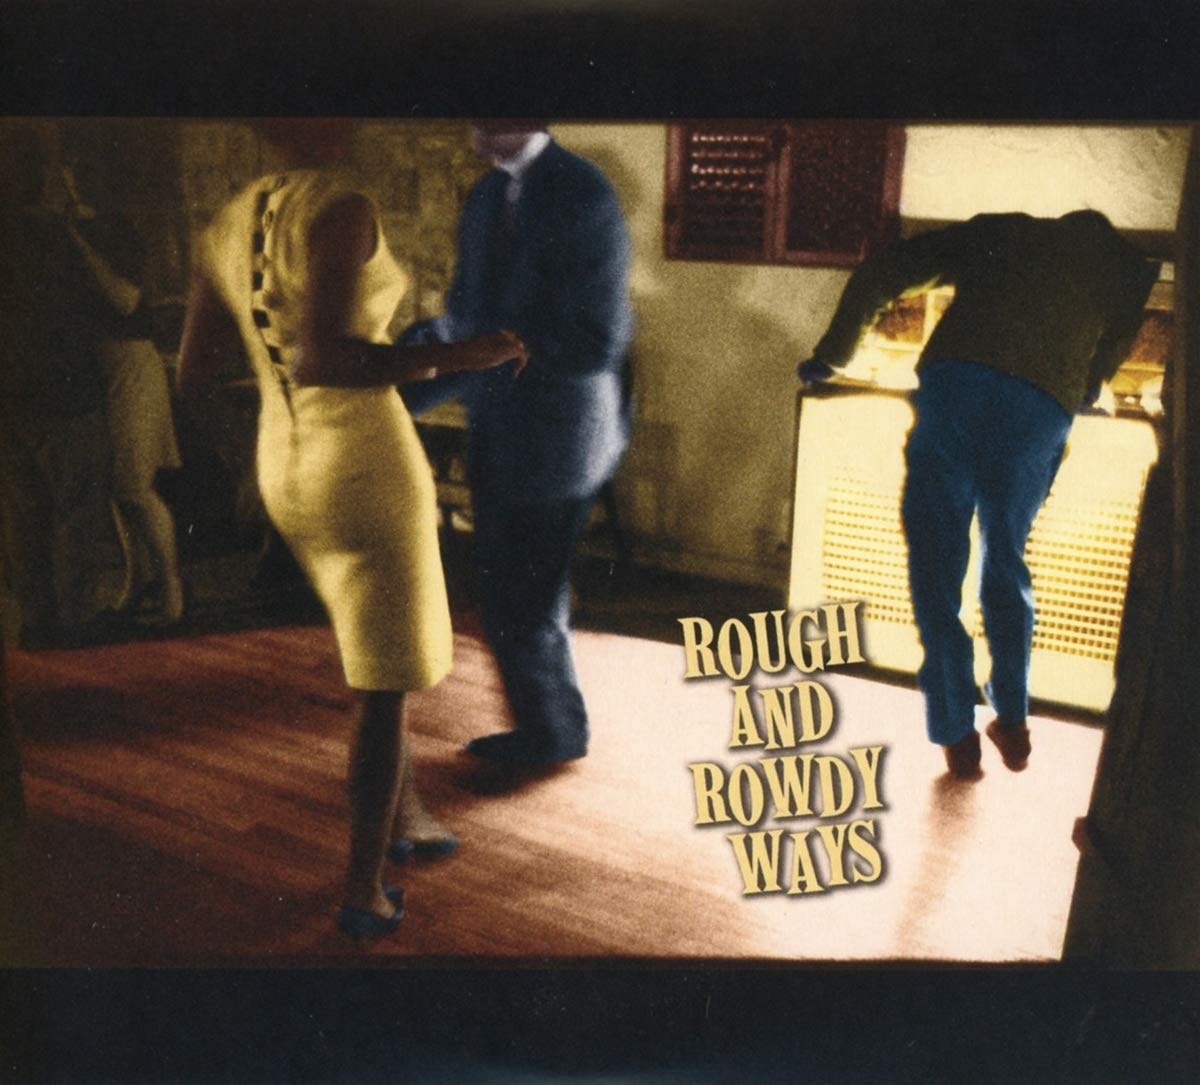 Bob Dylan - Rough And Rowdy Ways (Album Cover)